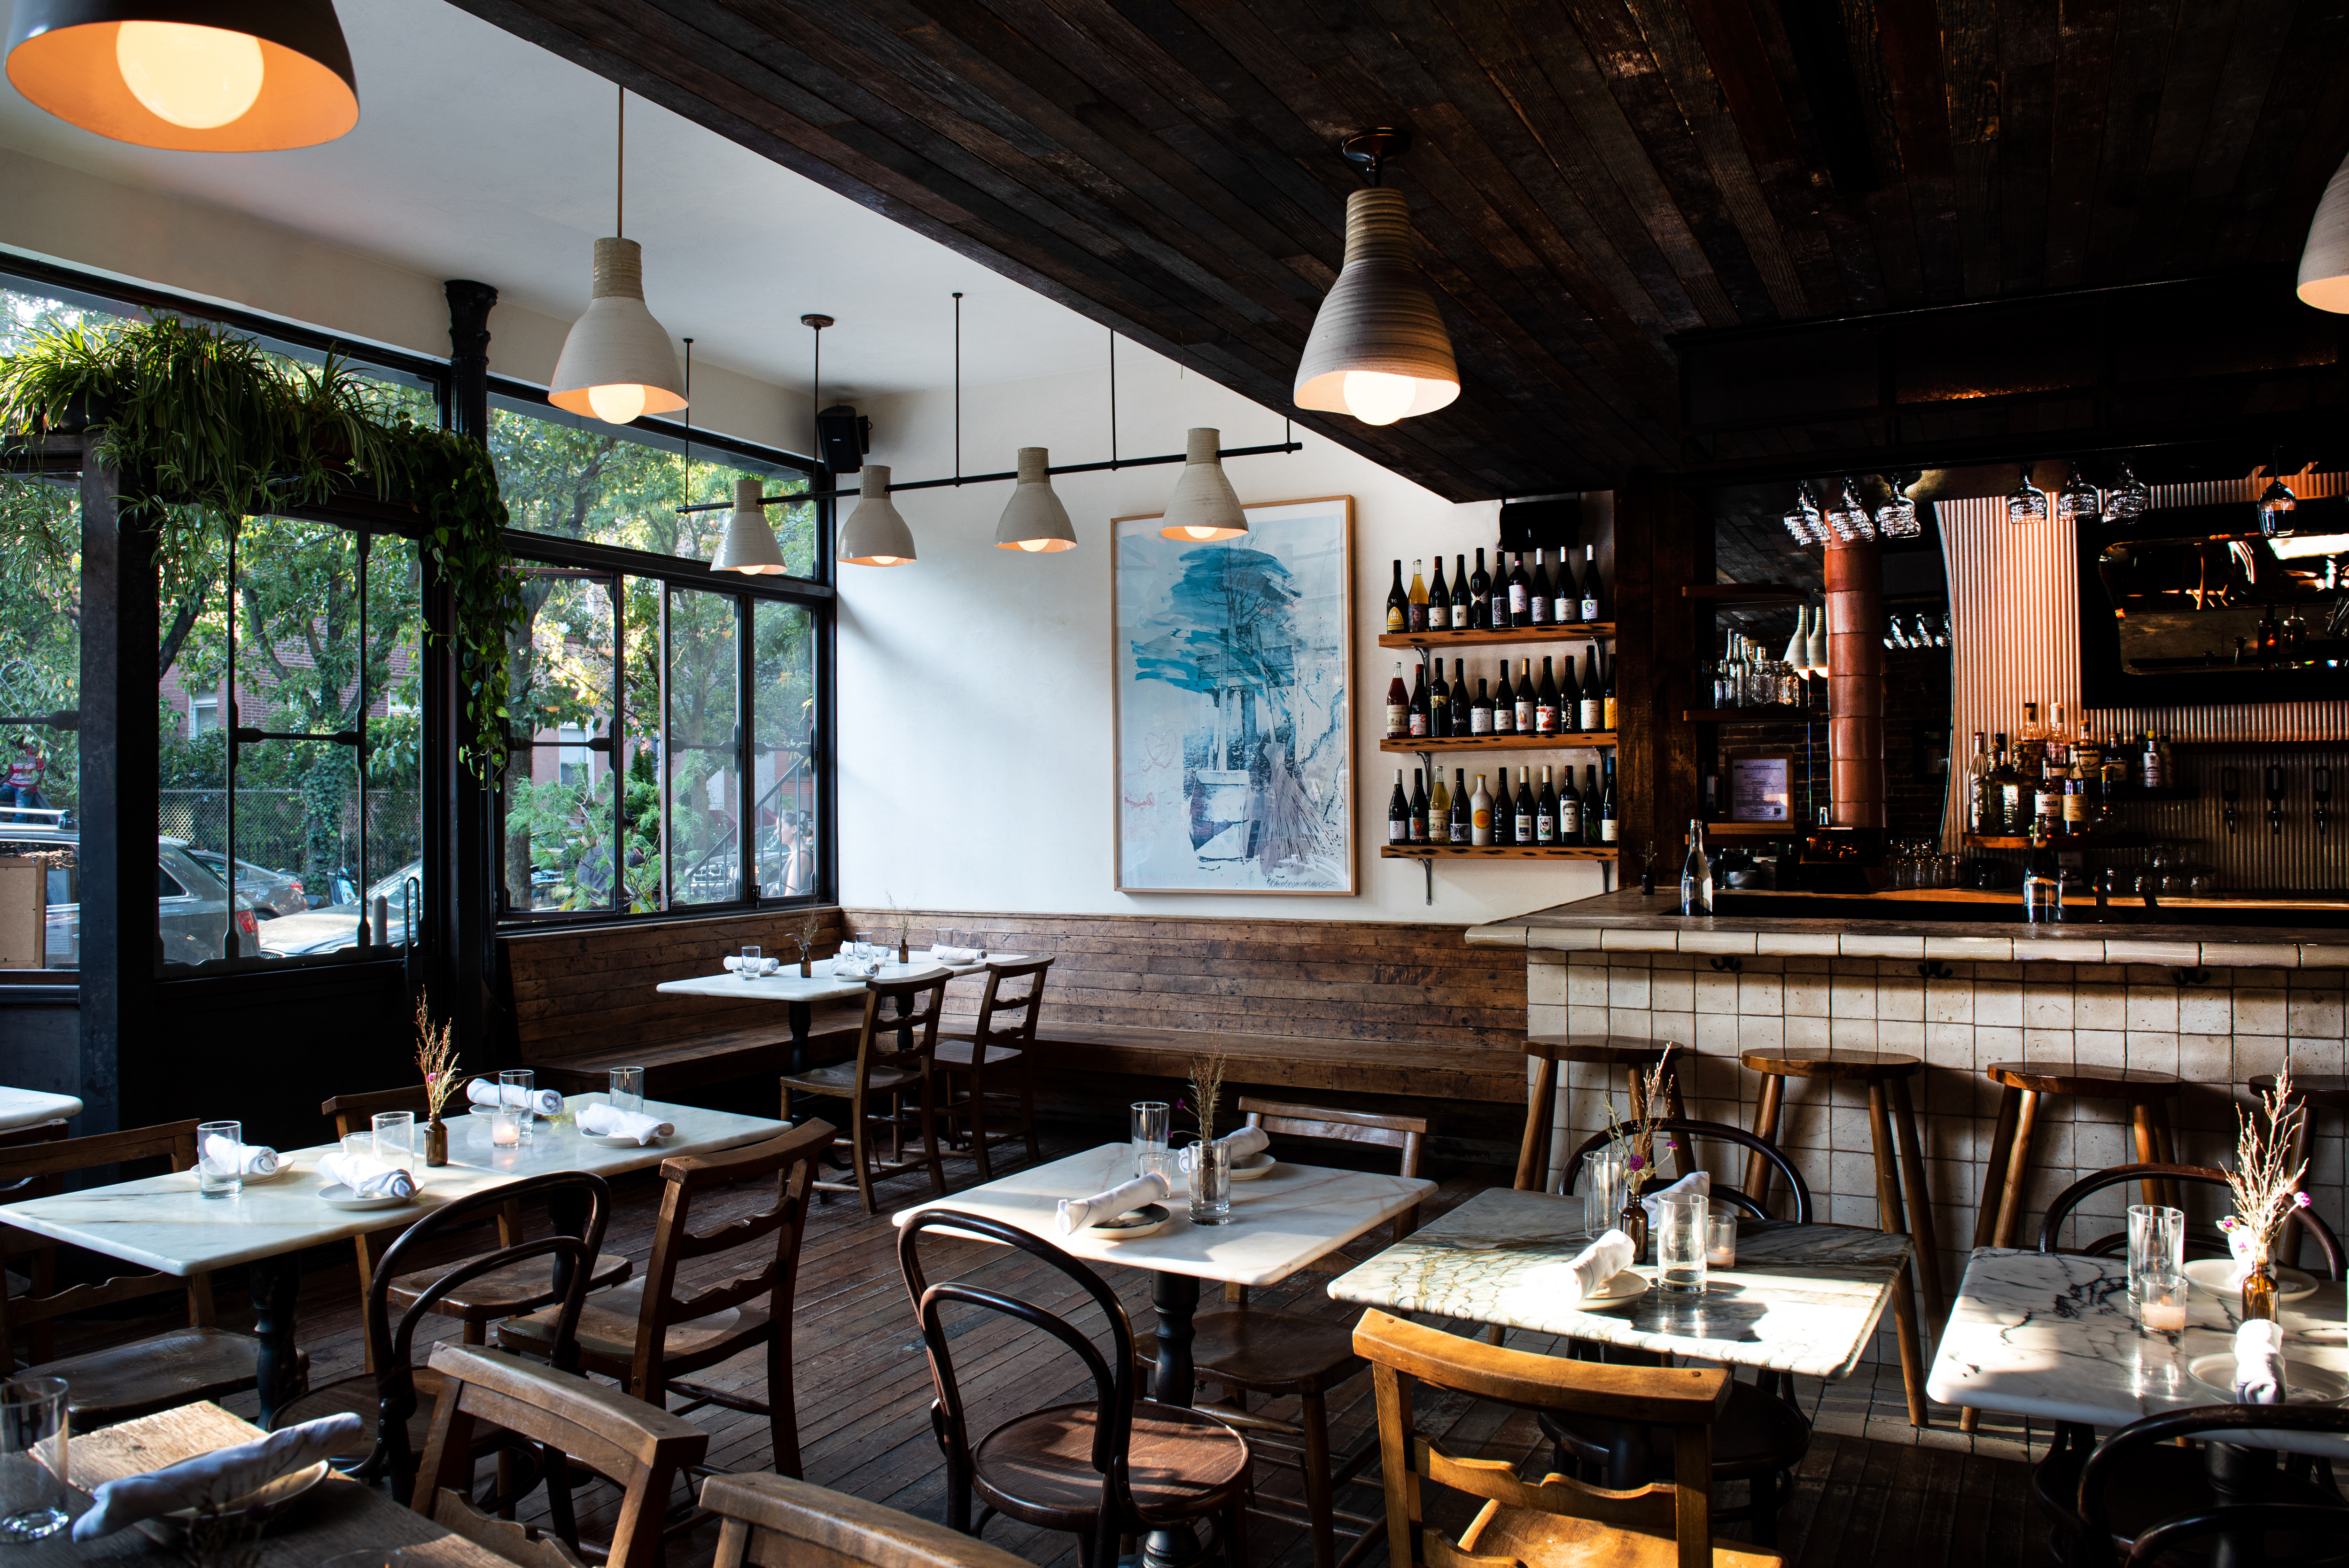 A Boundary-Pushing Natural Wine Bar Opens in Fort Greene With Zero-Waste Goal